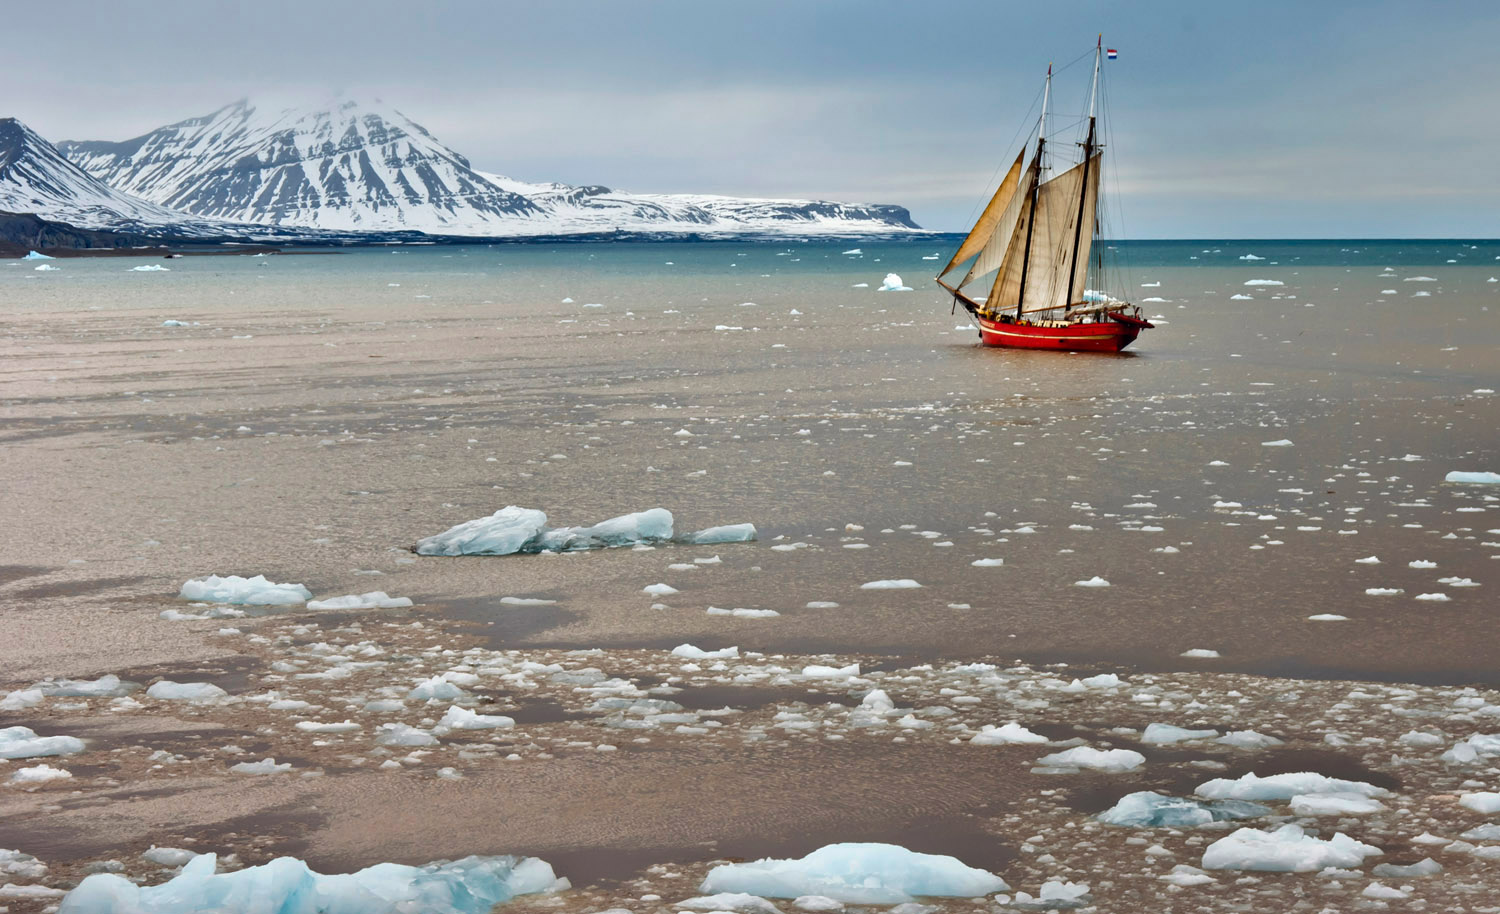 The Russian Arctic occupies an enormous area stretching across the Arctic Ocean.